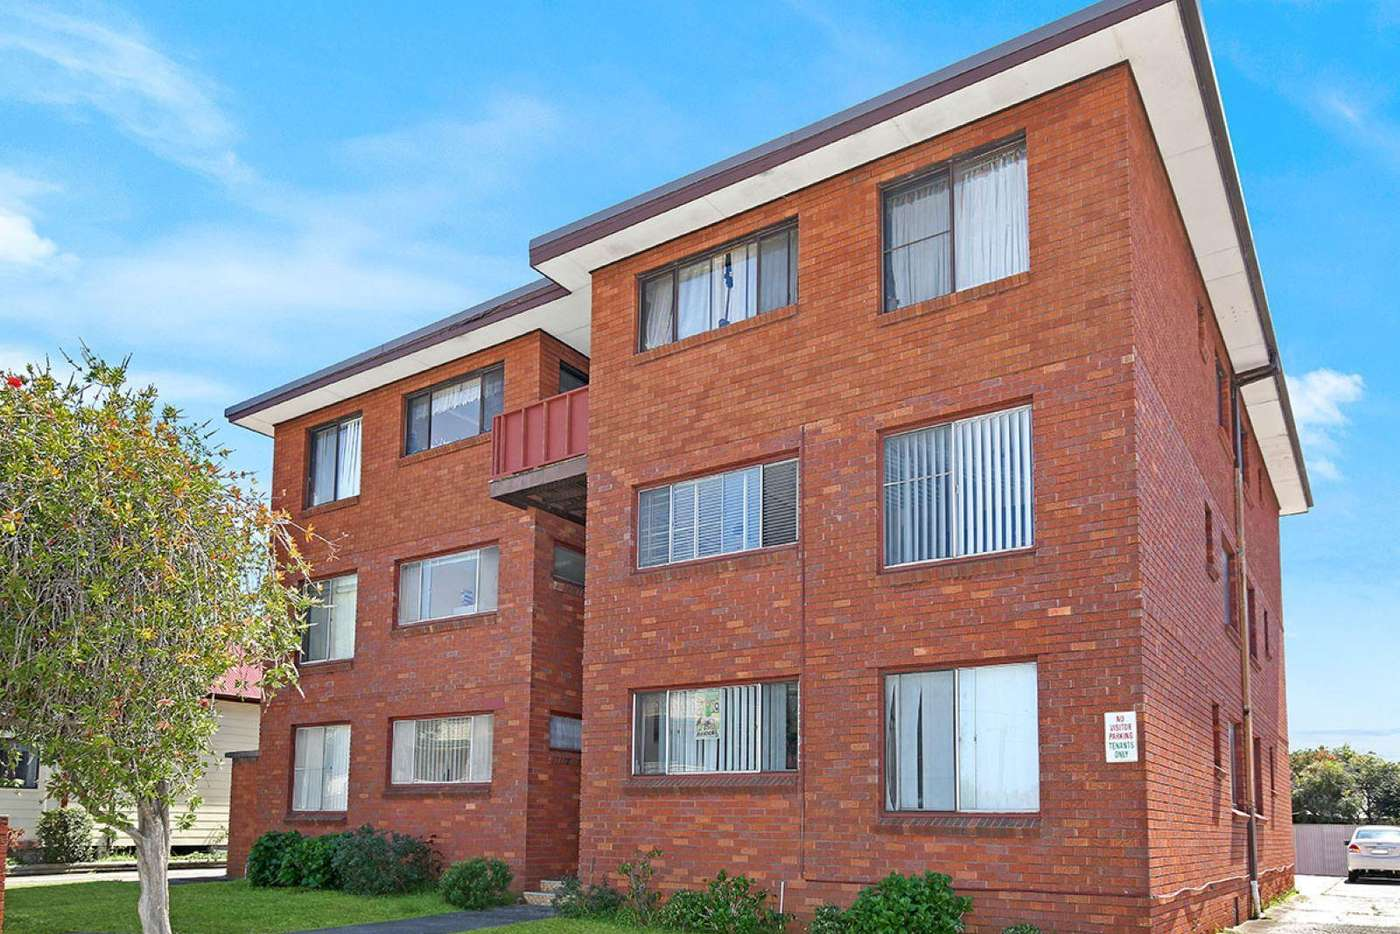 Main view of Homely unit listing, 14/58 Bank Street, Wollongong NSW 2500